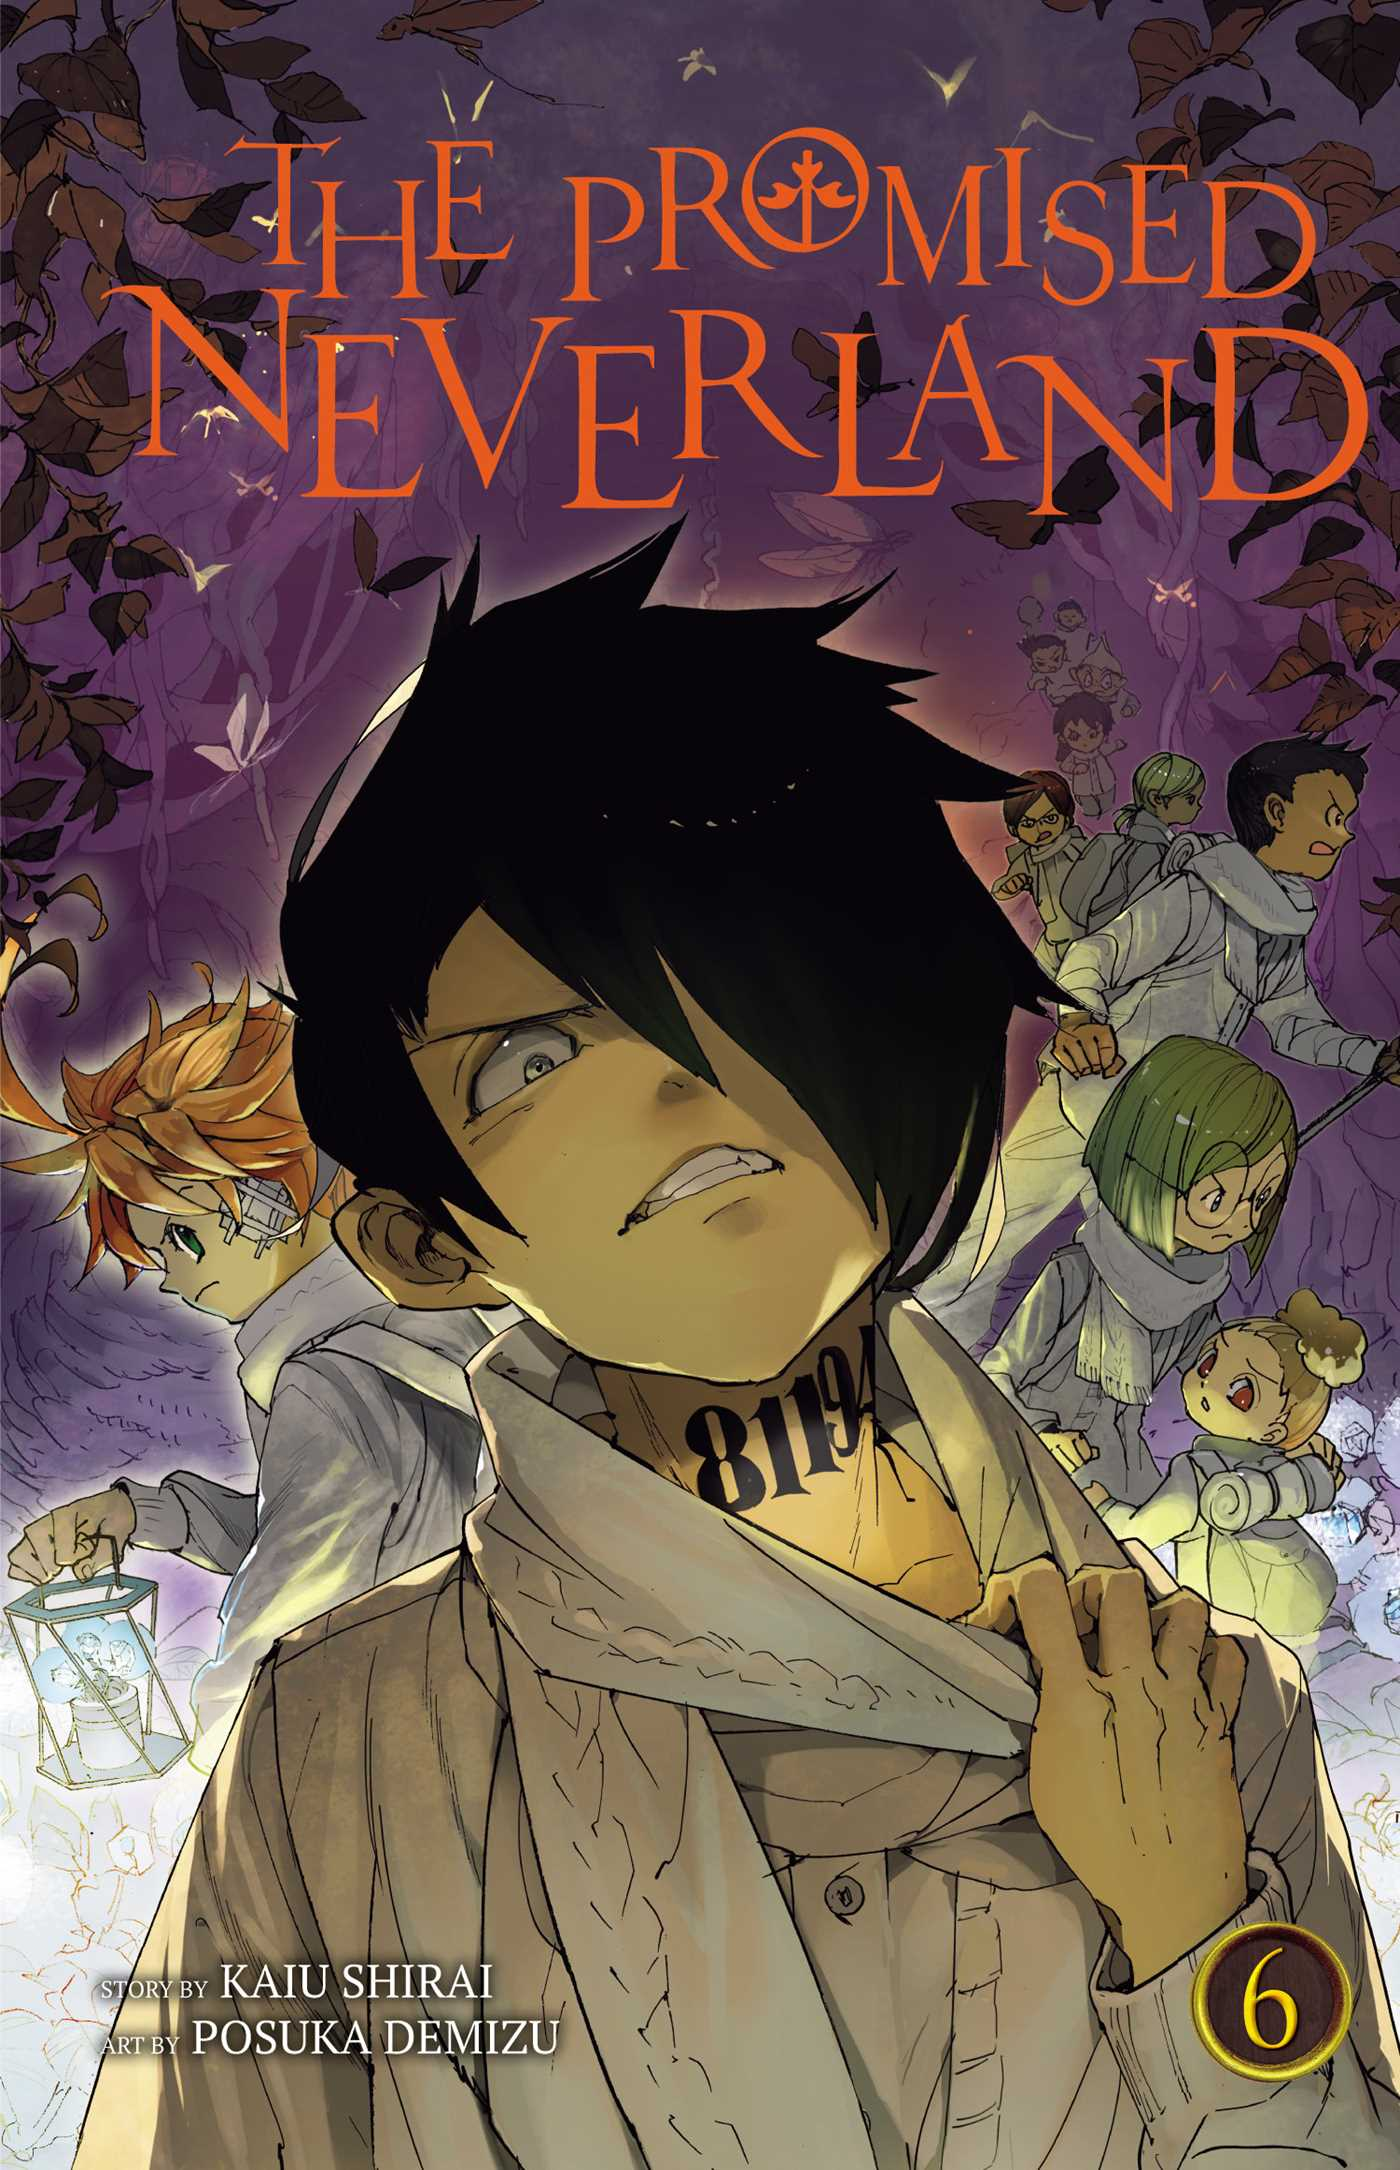 the promised neverland season 2 episode 2 preview release date watch online 600030438d5bf The Promised Neverland Season 2 Episode 2: Preview Release Date & Watch Online